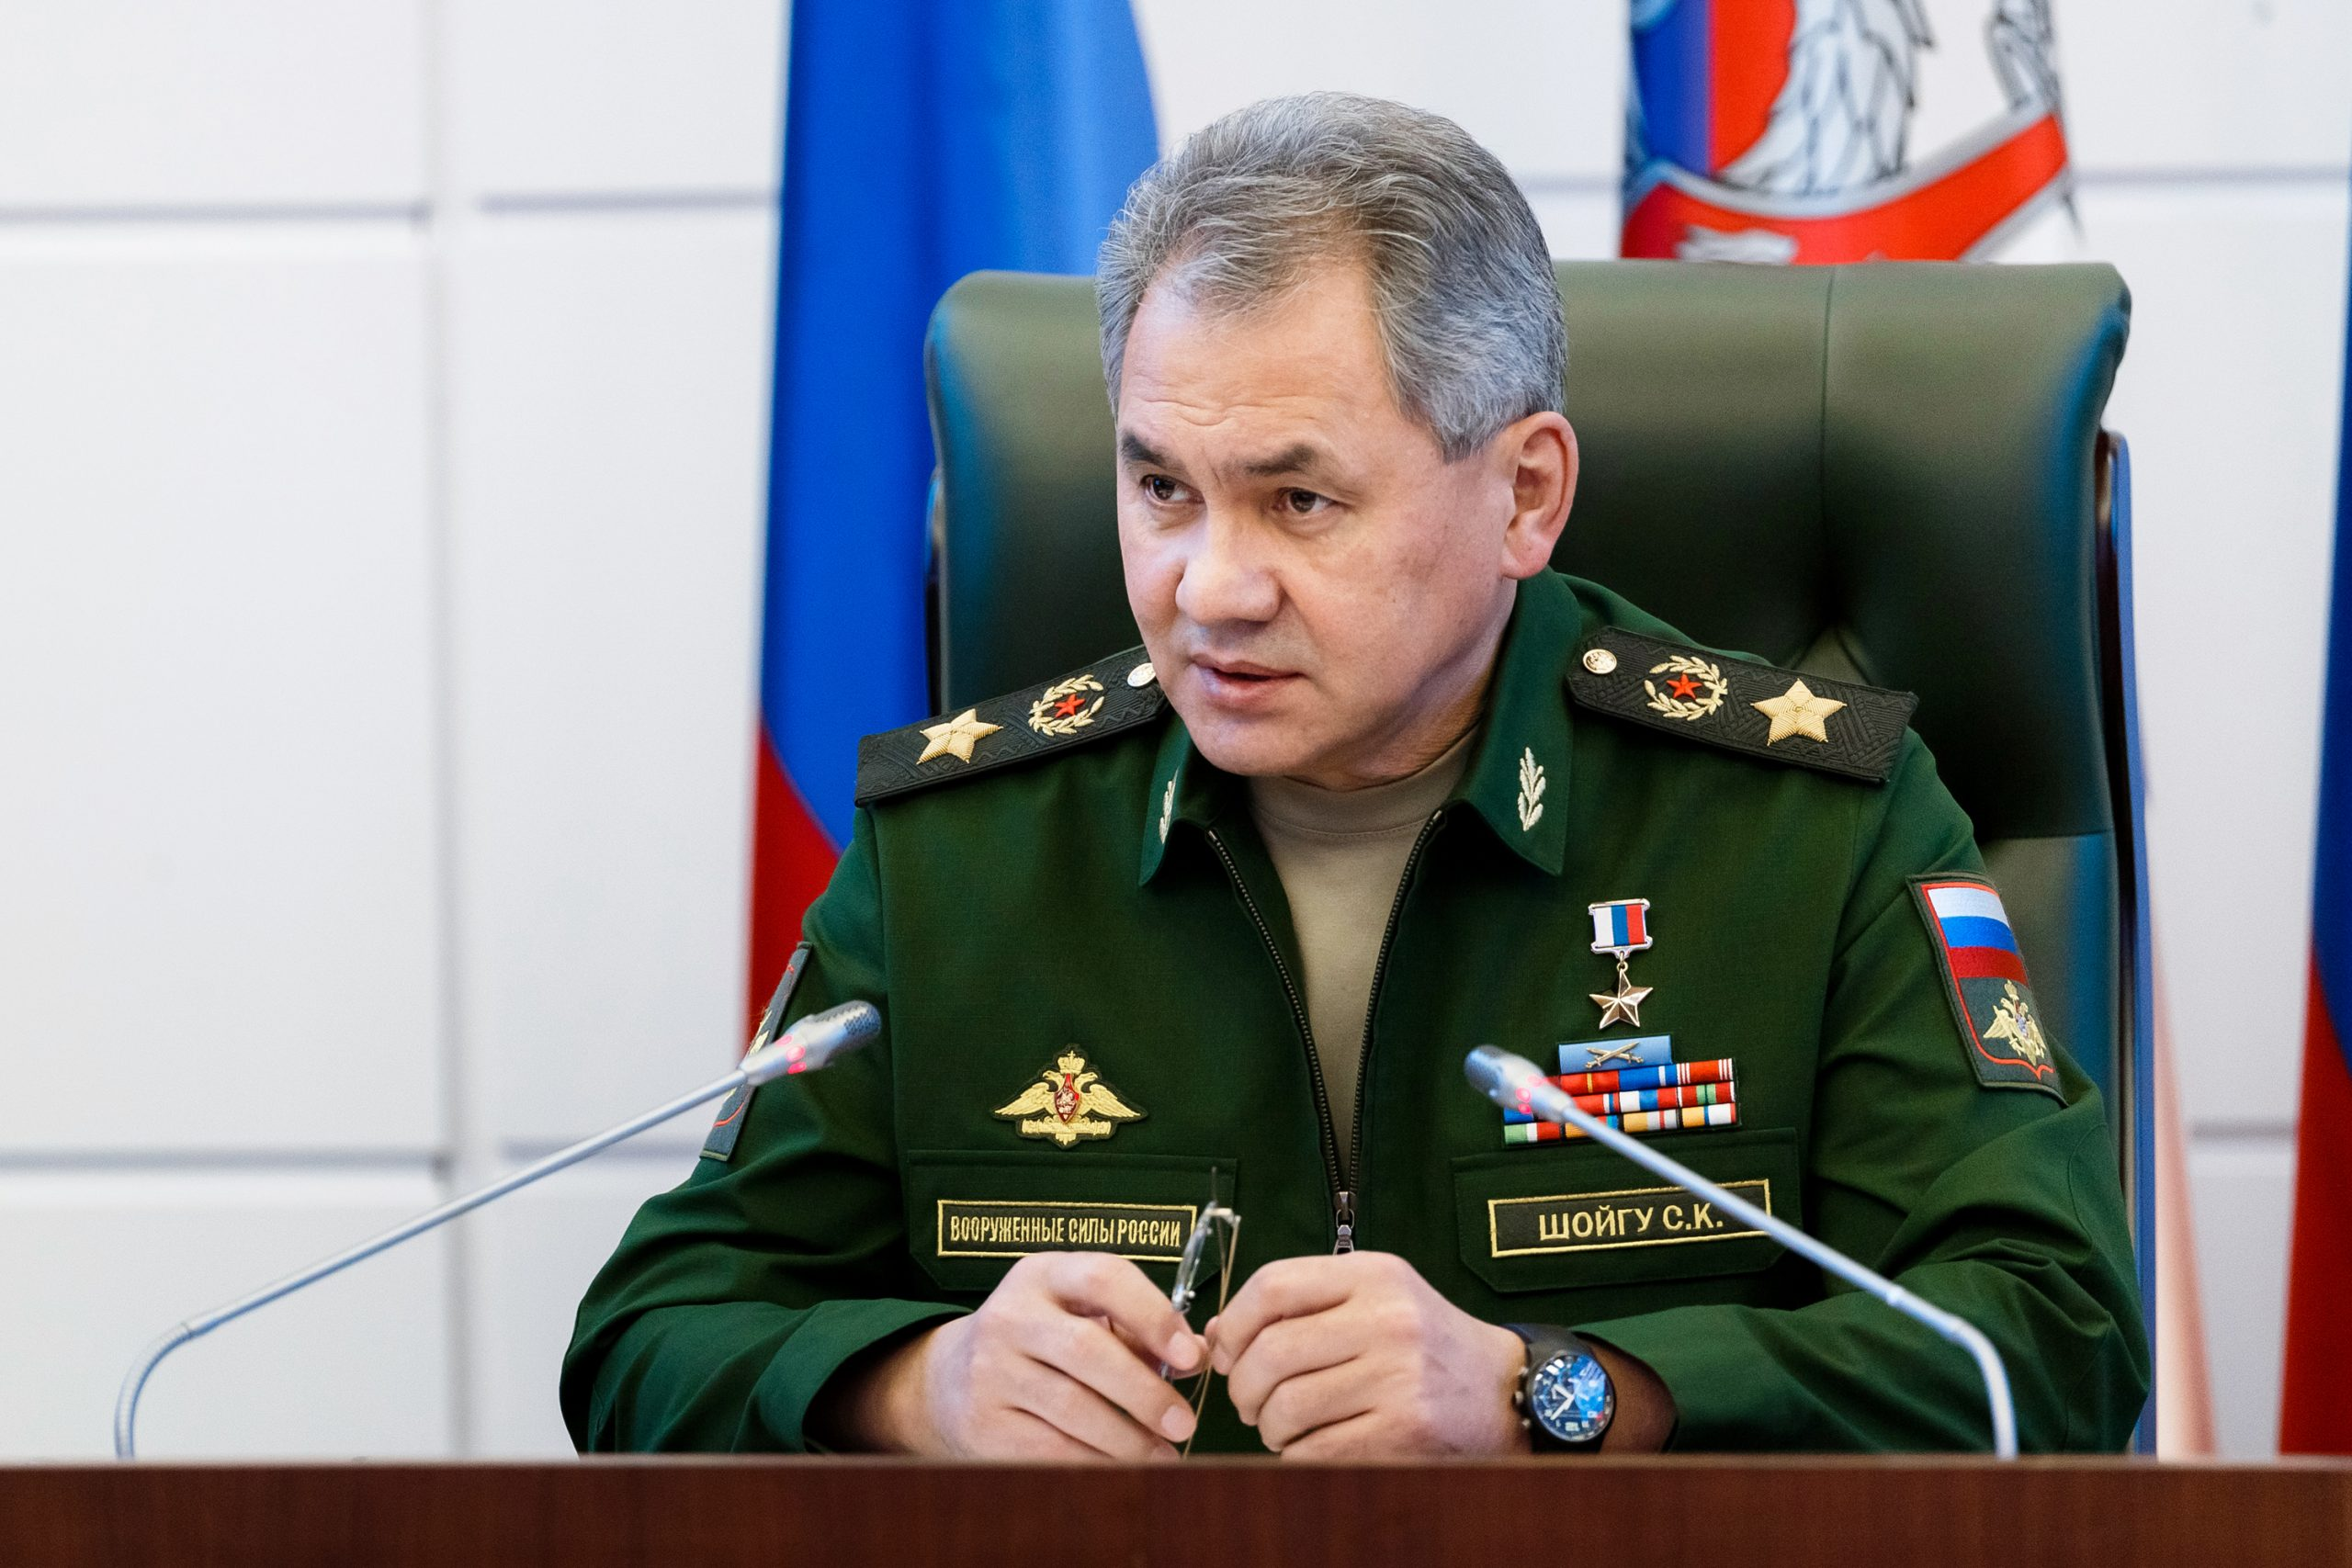 Defense Ministers of Russia and Armenia discuss situation in Nagorno-Karabakh